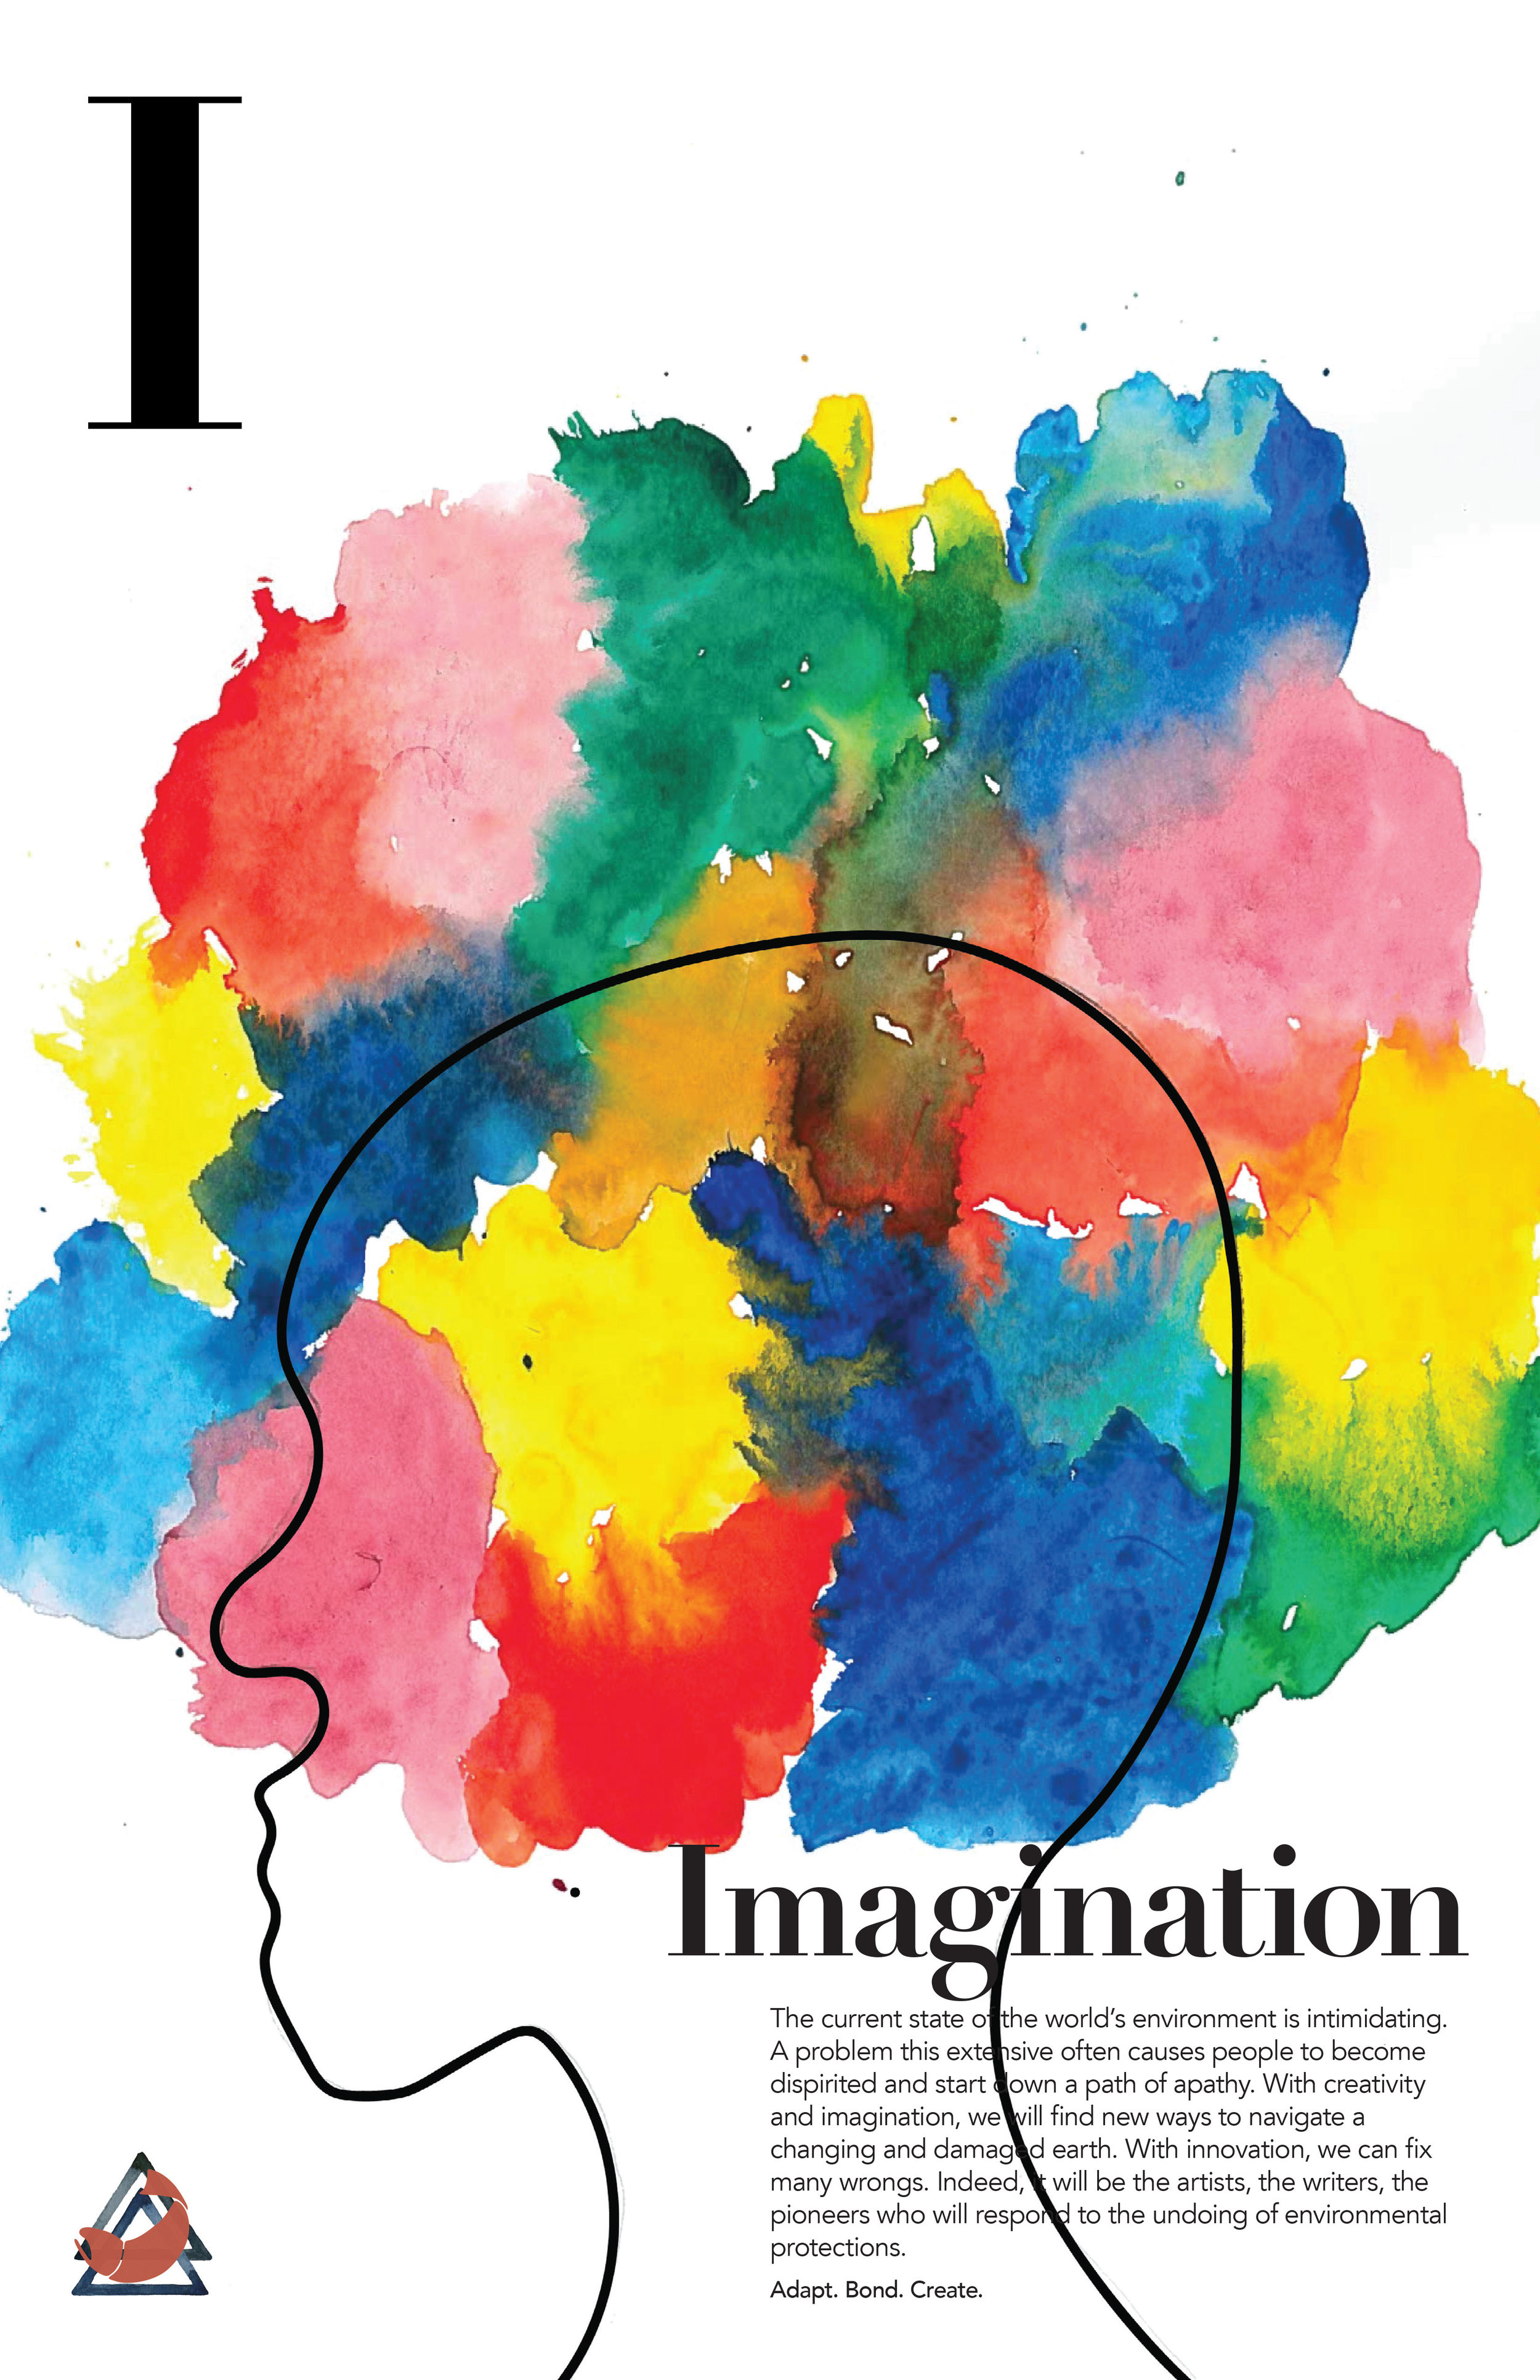 imagination_final copy.jpg